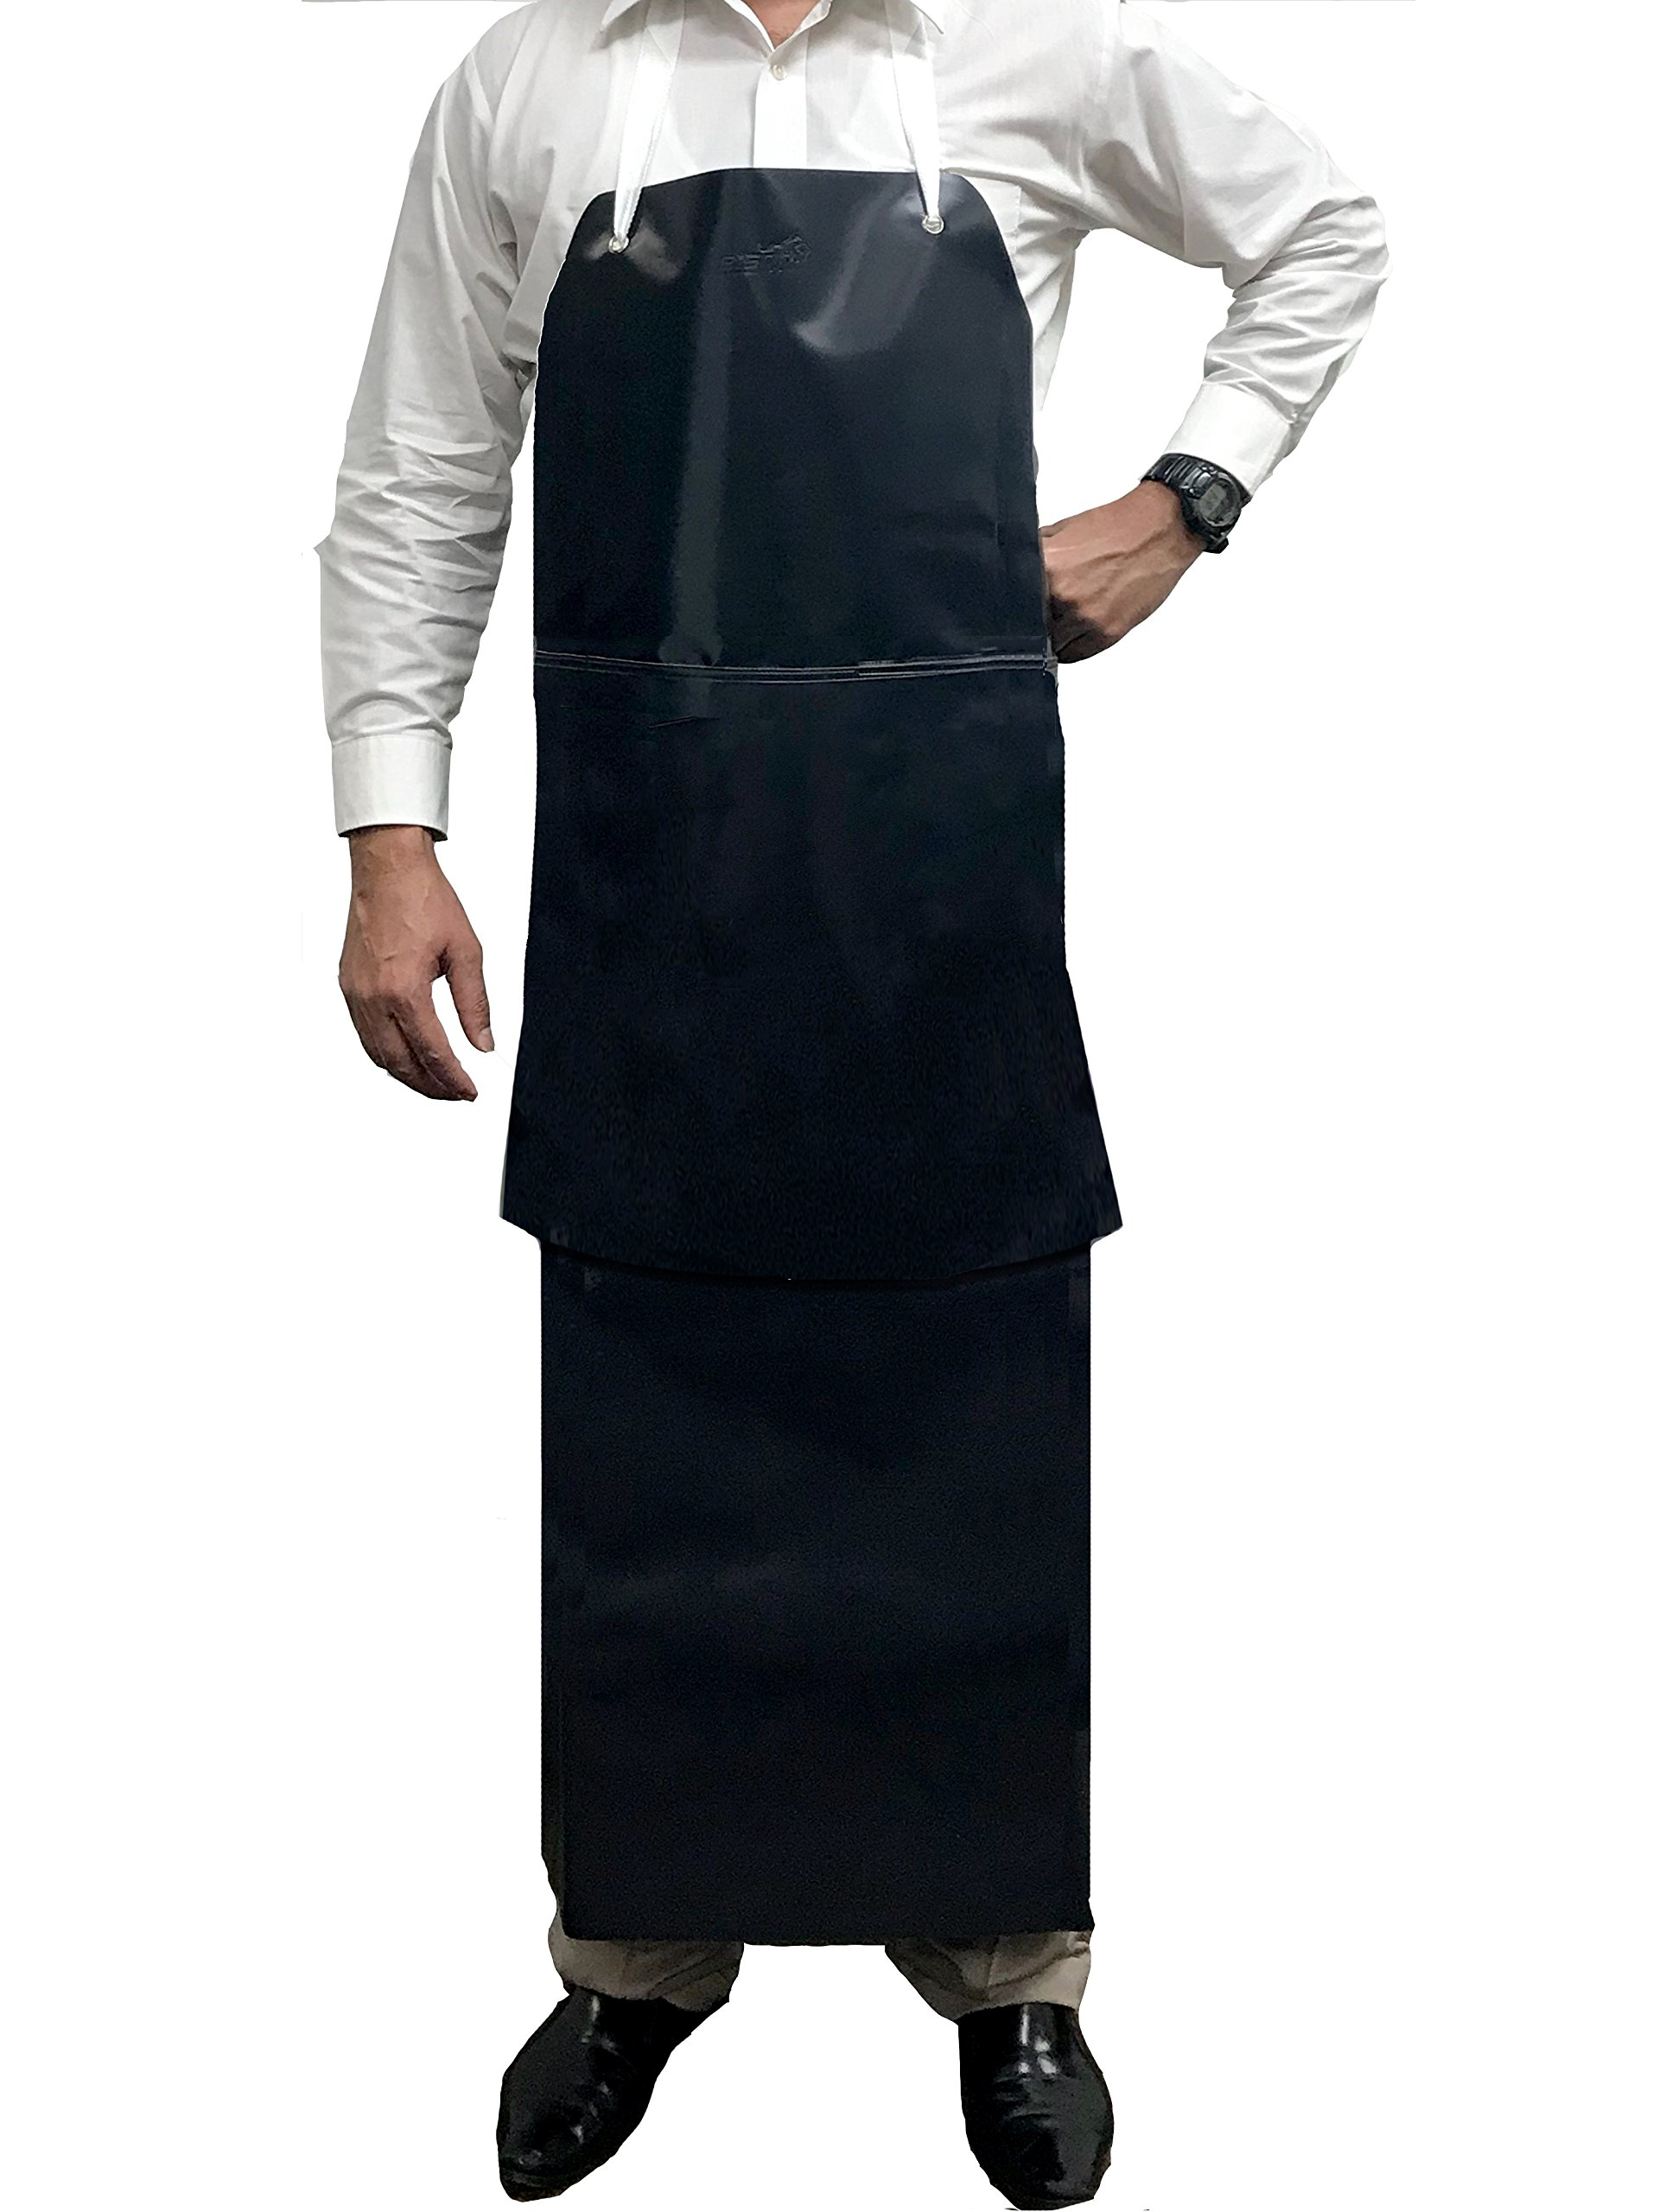 KLEEN CHEF Premium Heavy Duty PVC Leather Apron, Chemical and Water Resistant Double Layer Apron